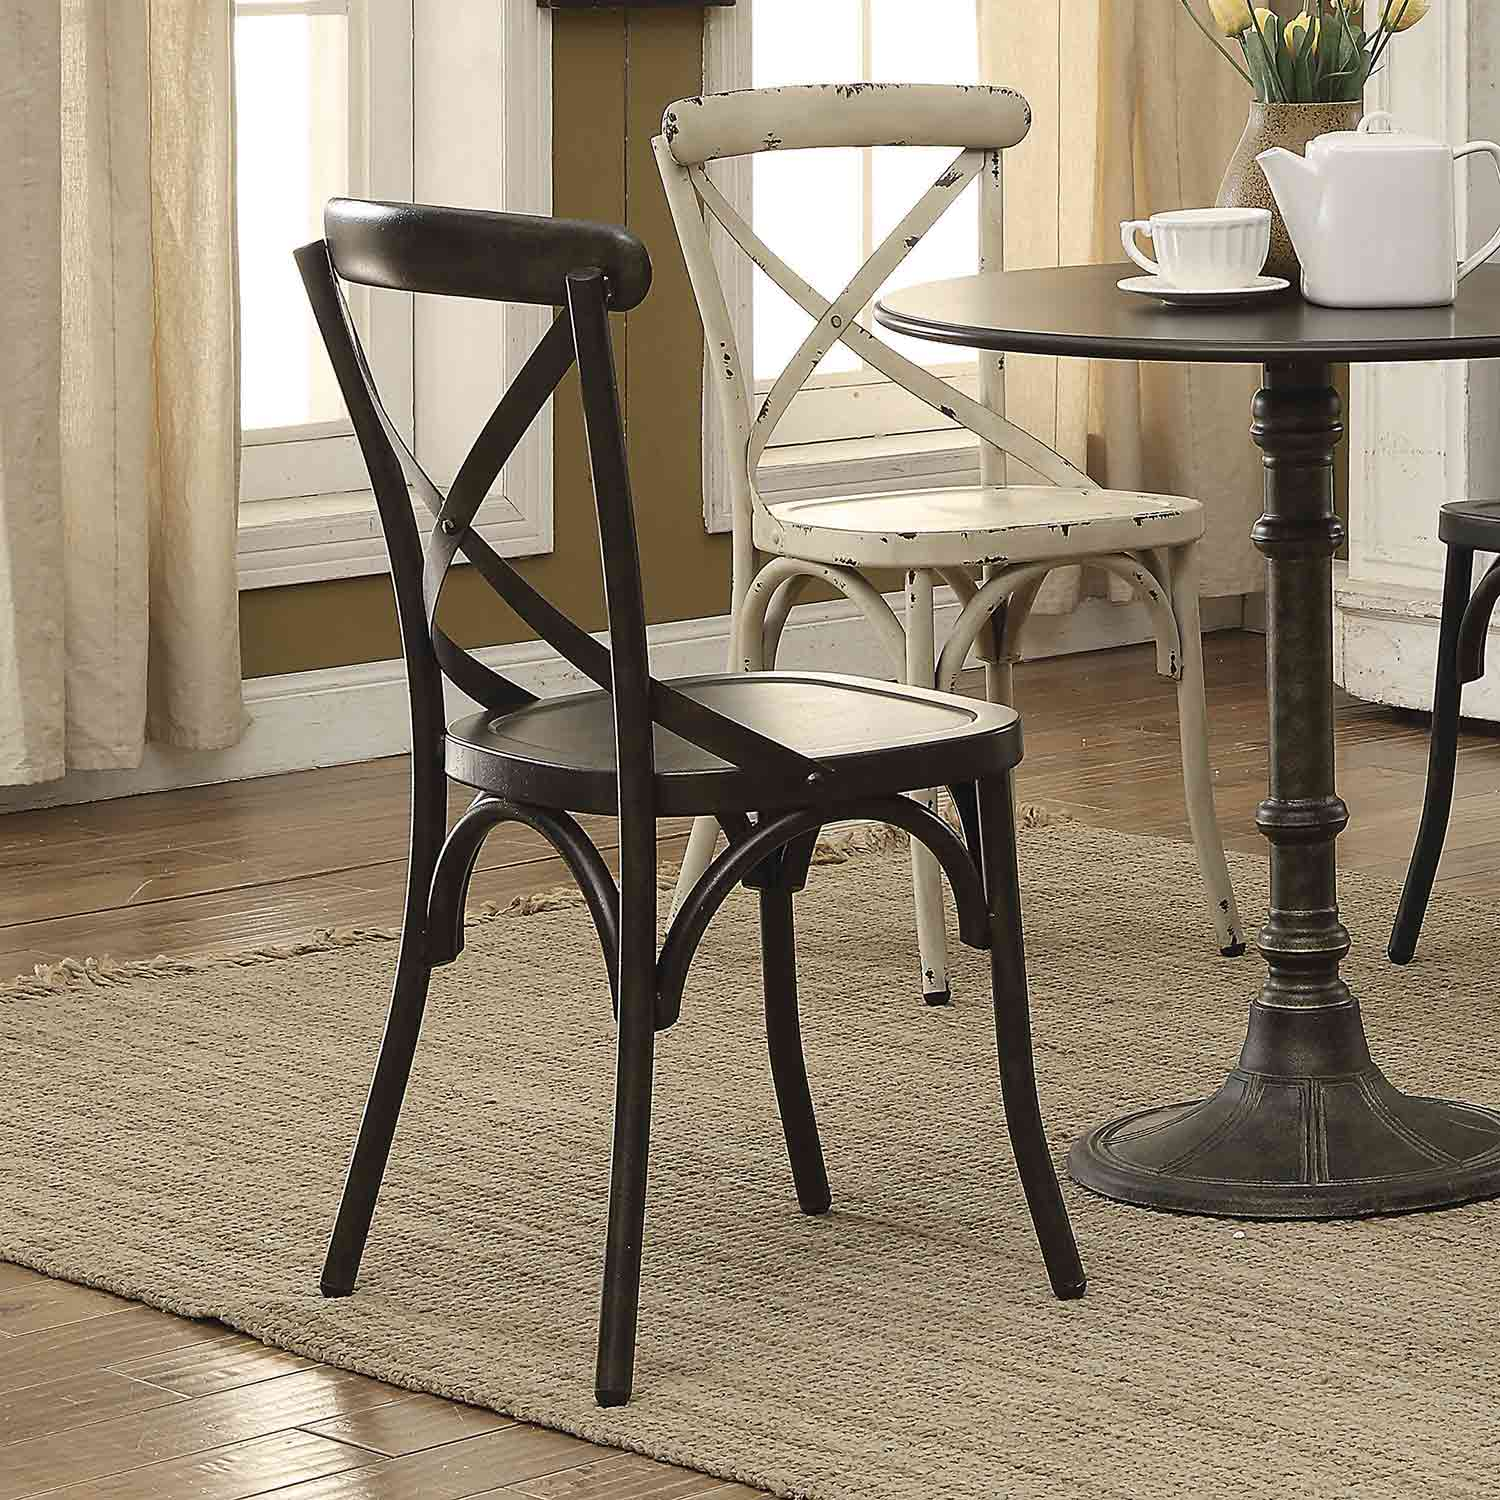 Coaster Nagel Dining Side Chair - Antique Brown 105316 at ...